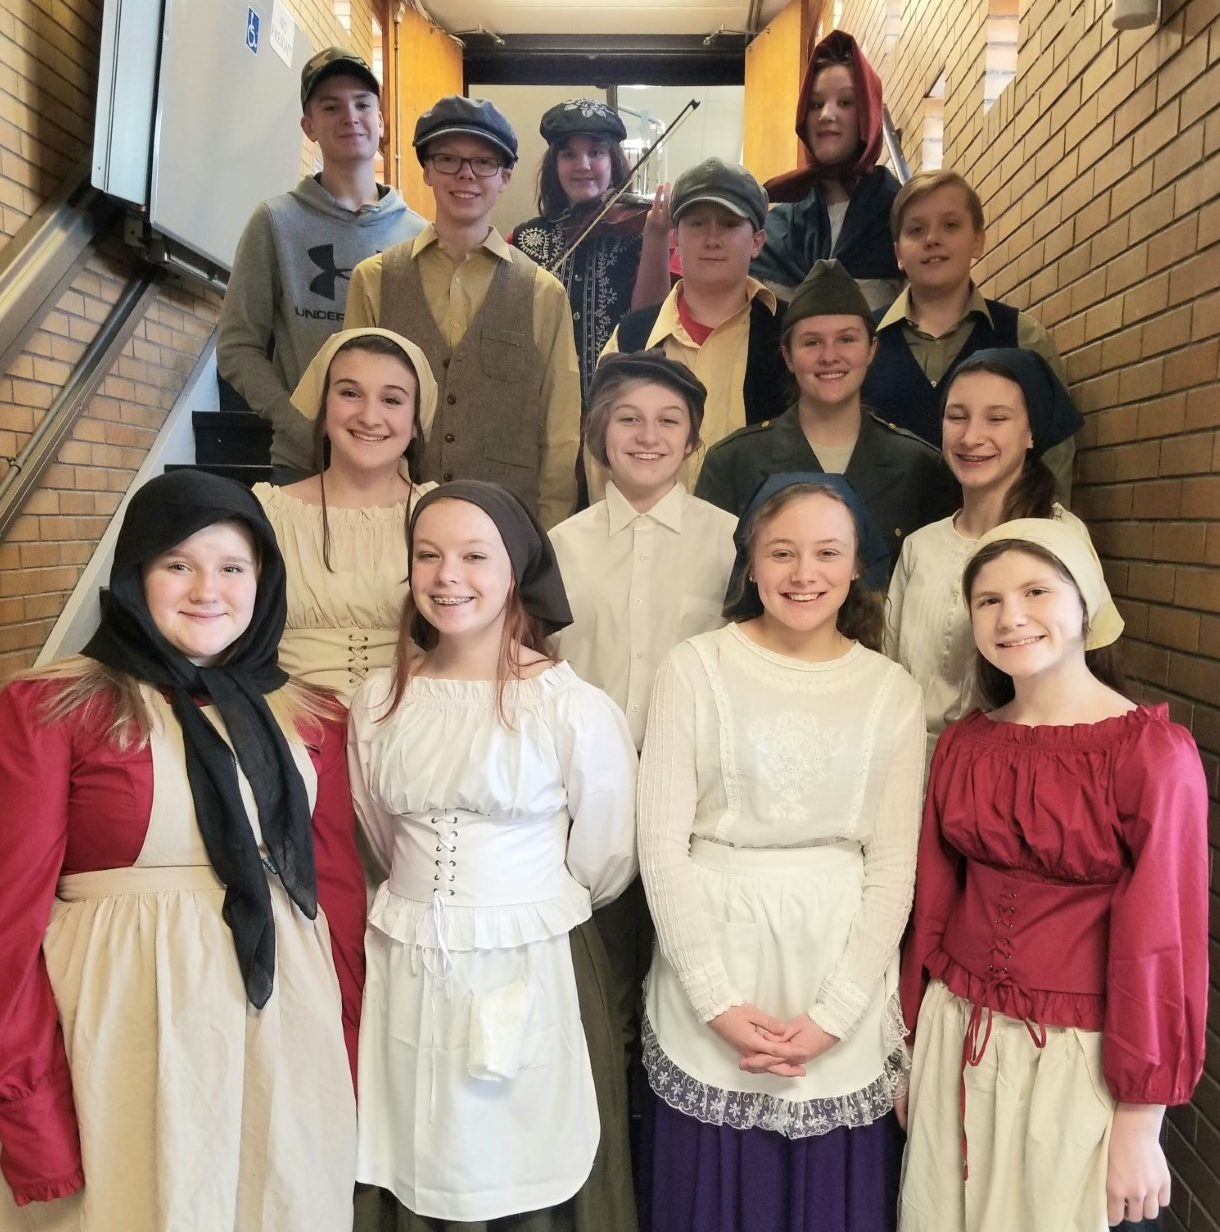 EJHS Fiddler on the Roof Jr. Feb. 28